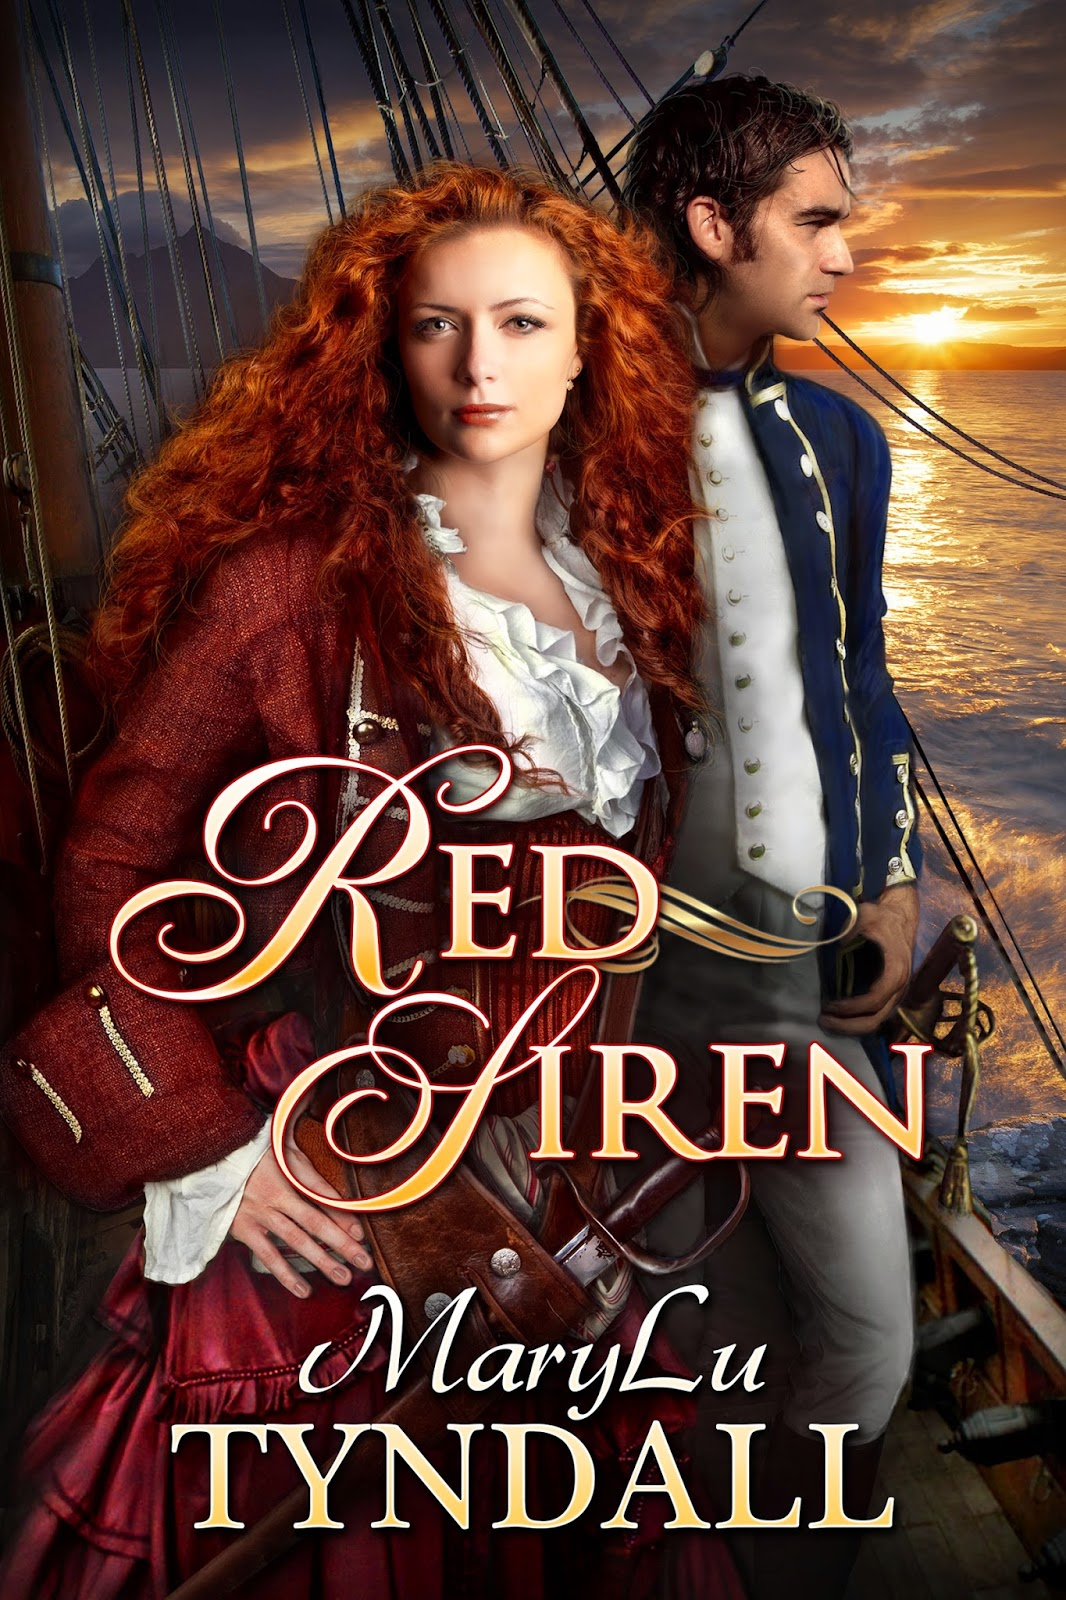 My novel the red siren a tale about another colonial woman pirate